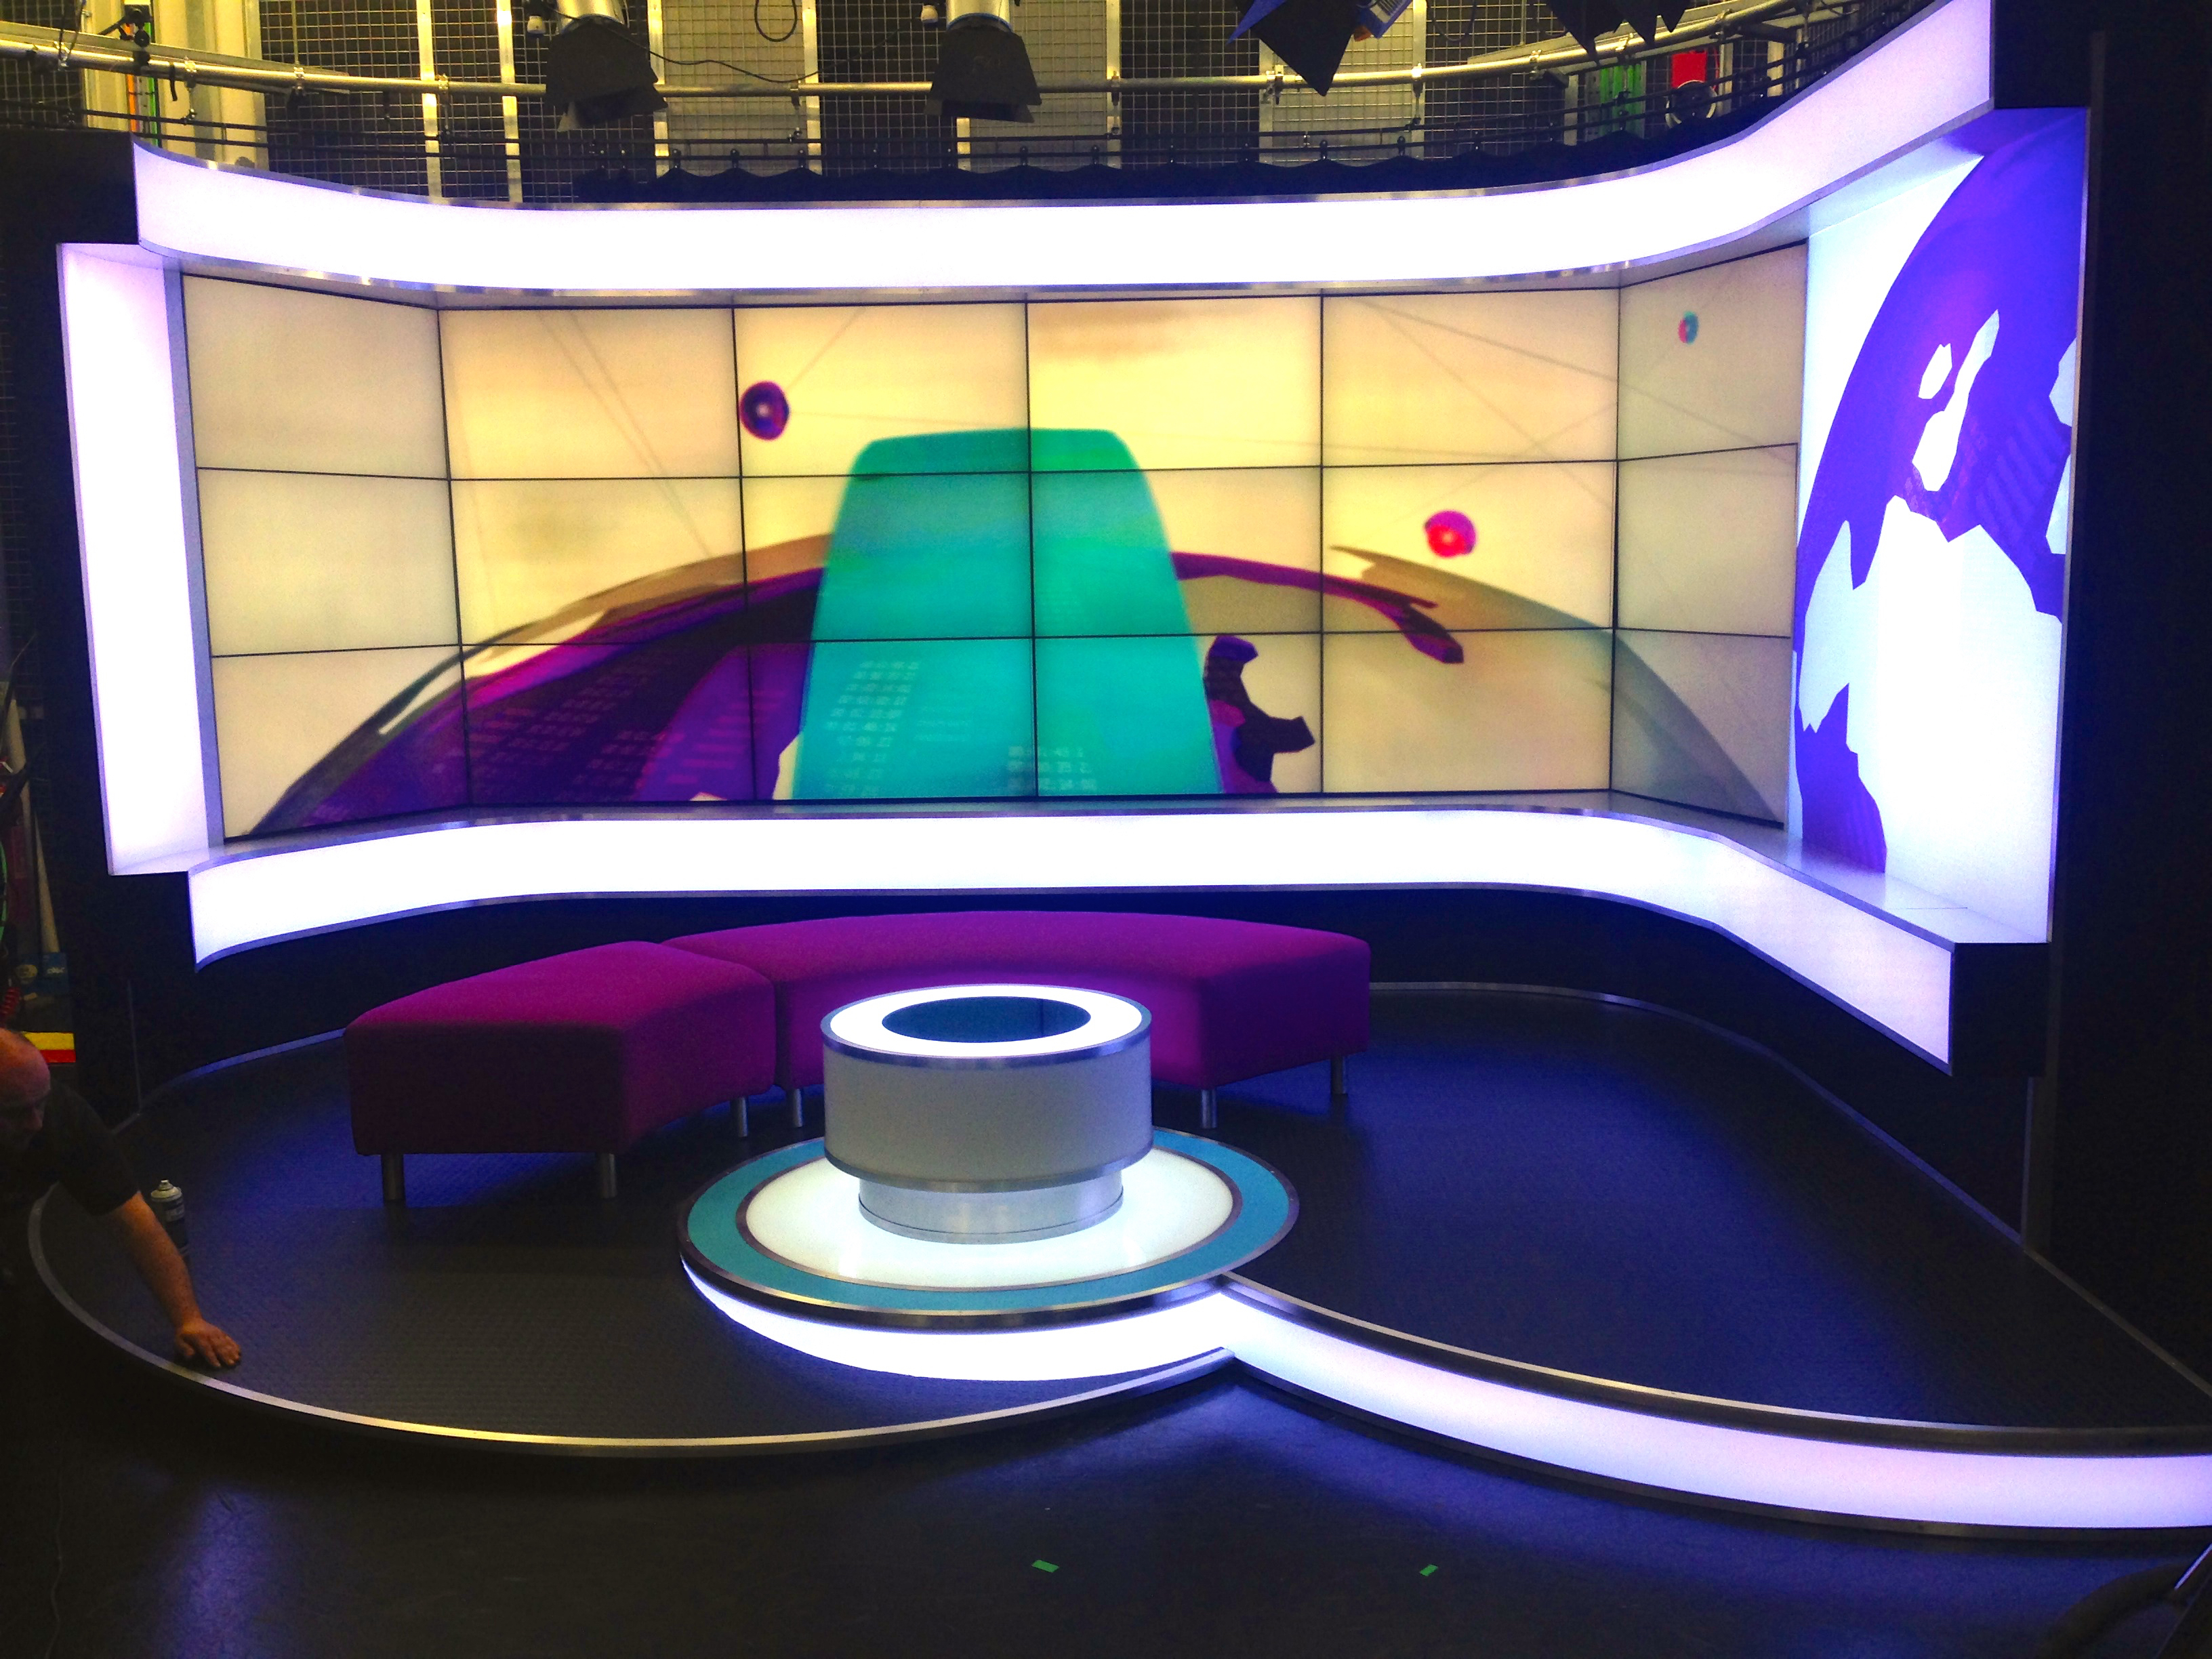 newsround - photo #29